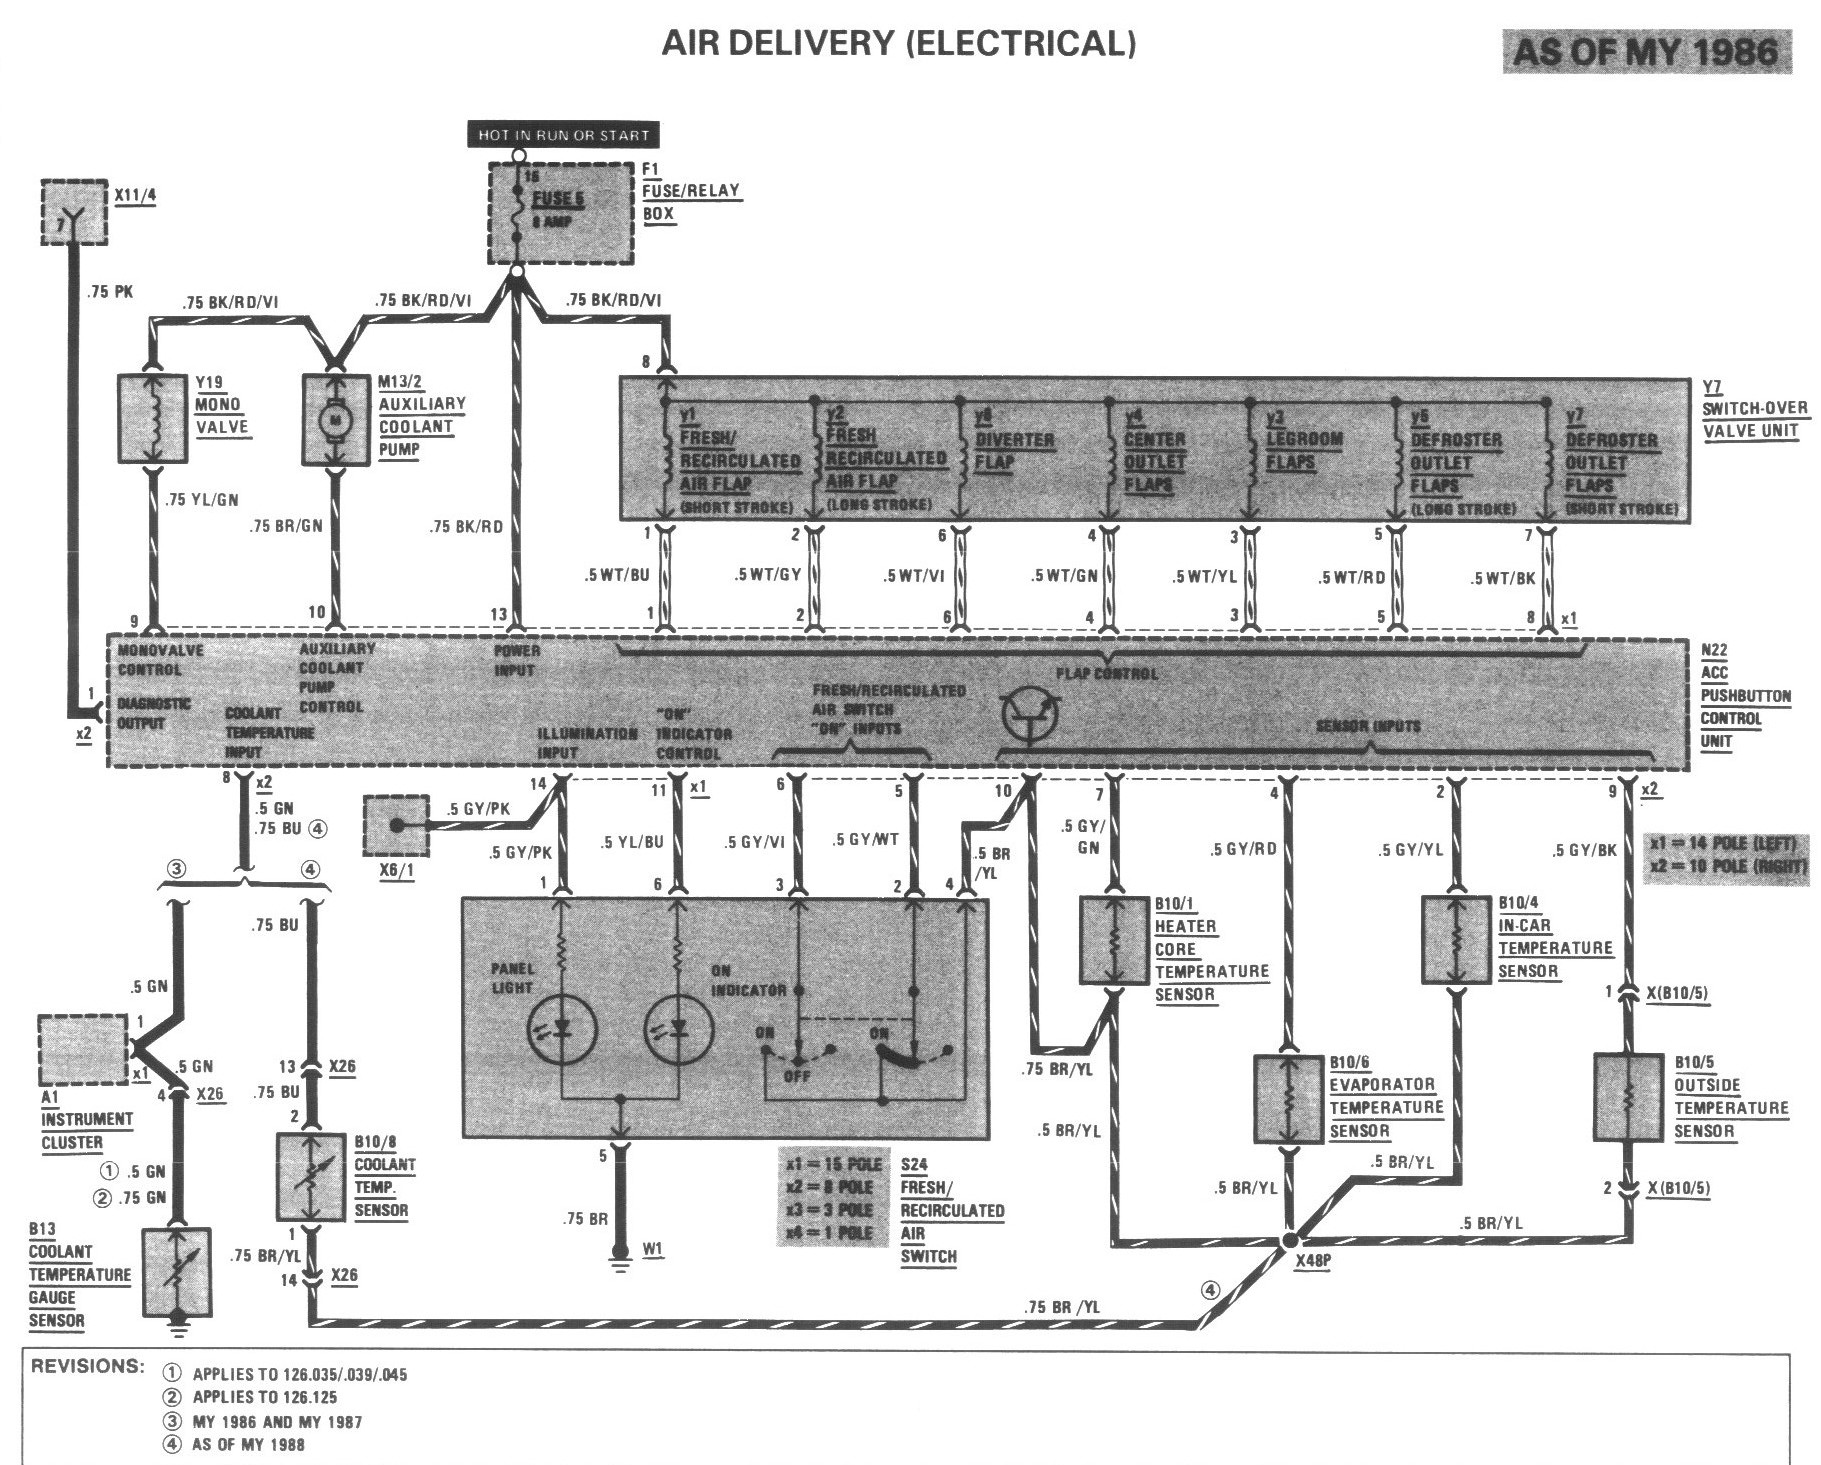 dayton electric heater wiring diagram dayton image wiring diagram for dayton thermostat wiring image on dayton electric heater wiring diagram